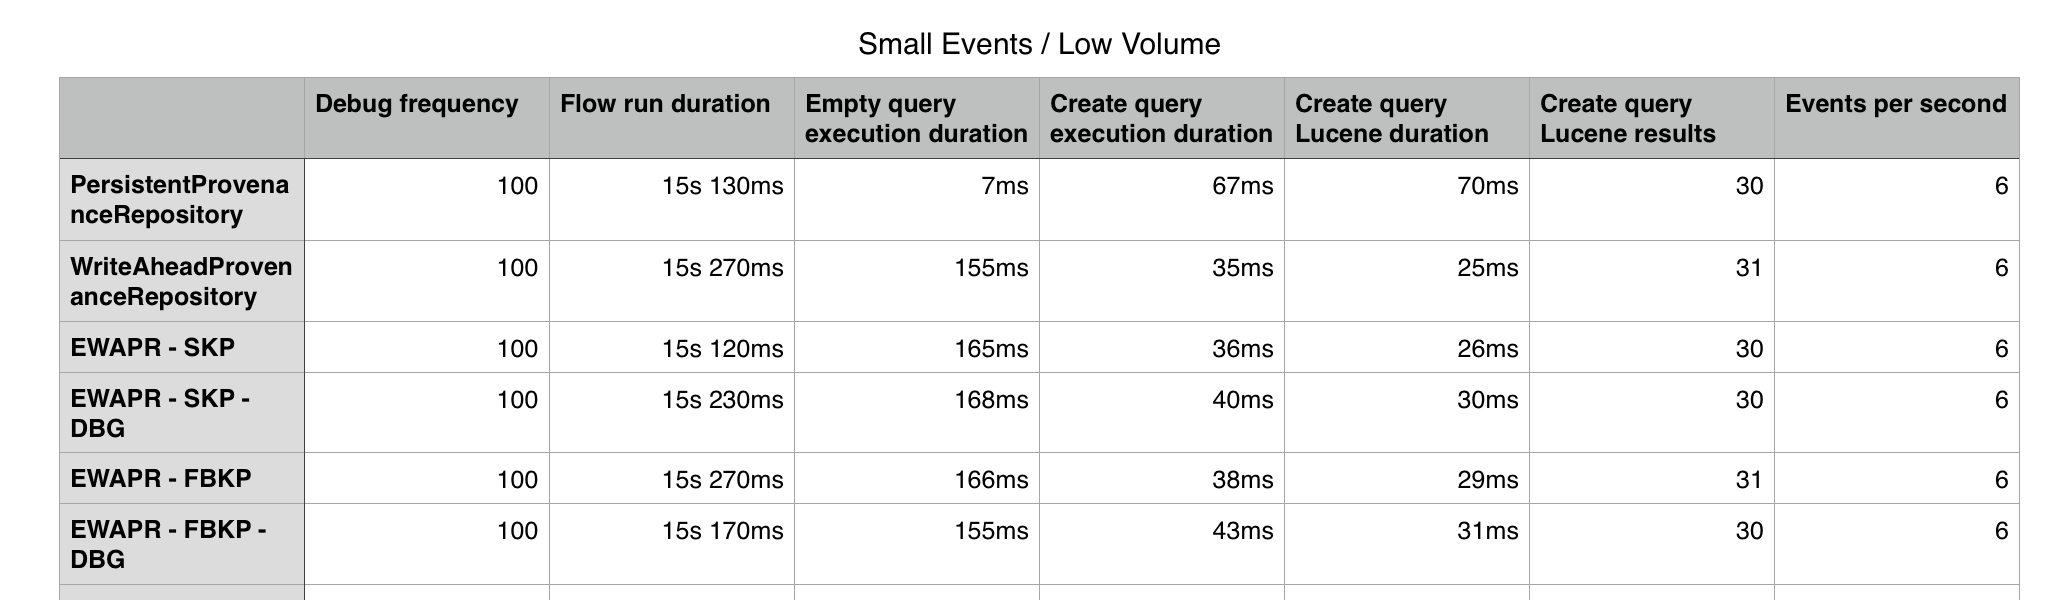 Small event size, low volume